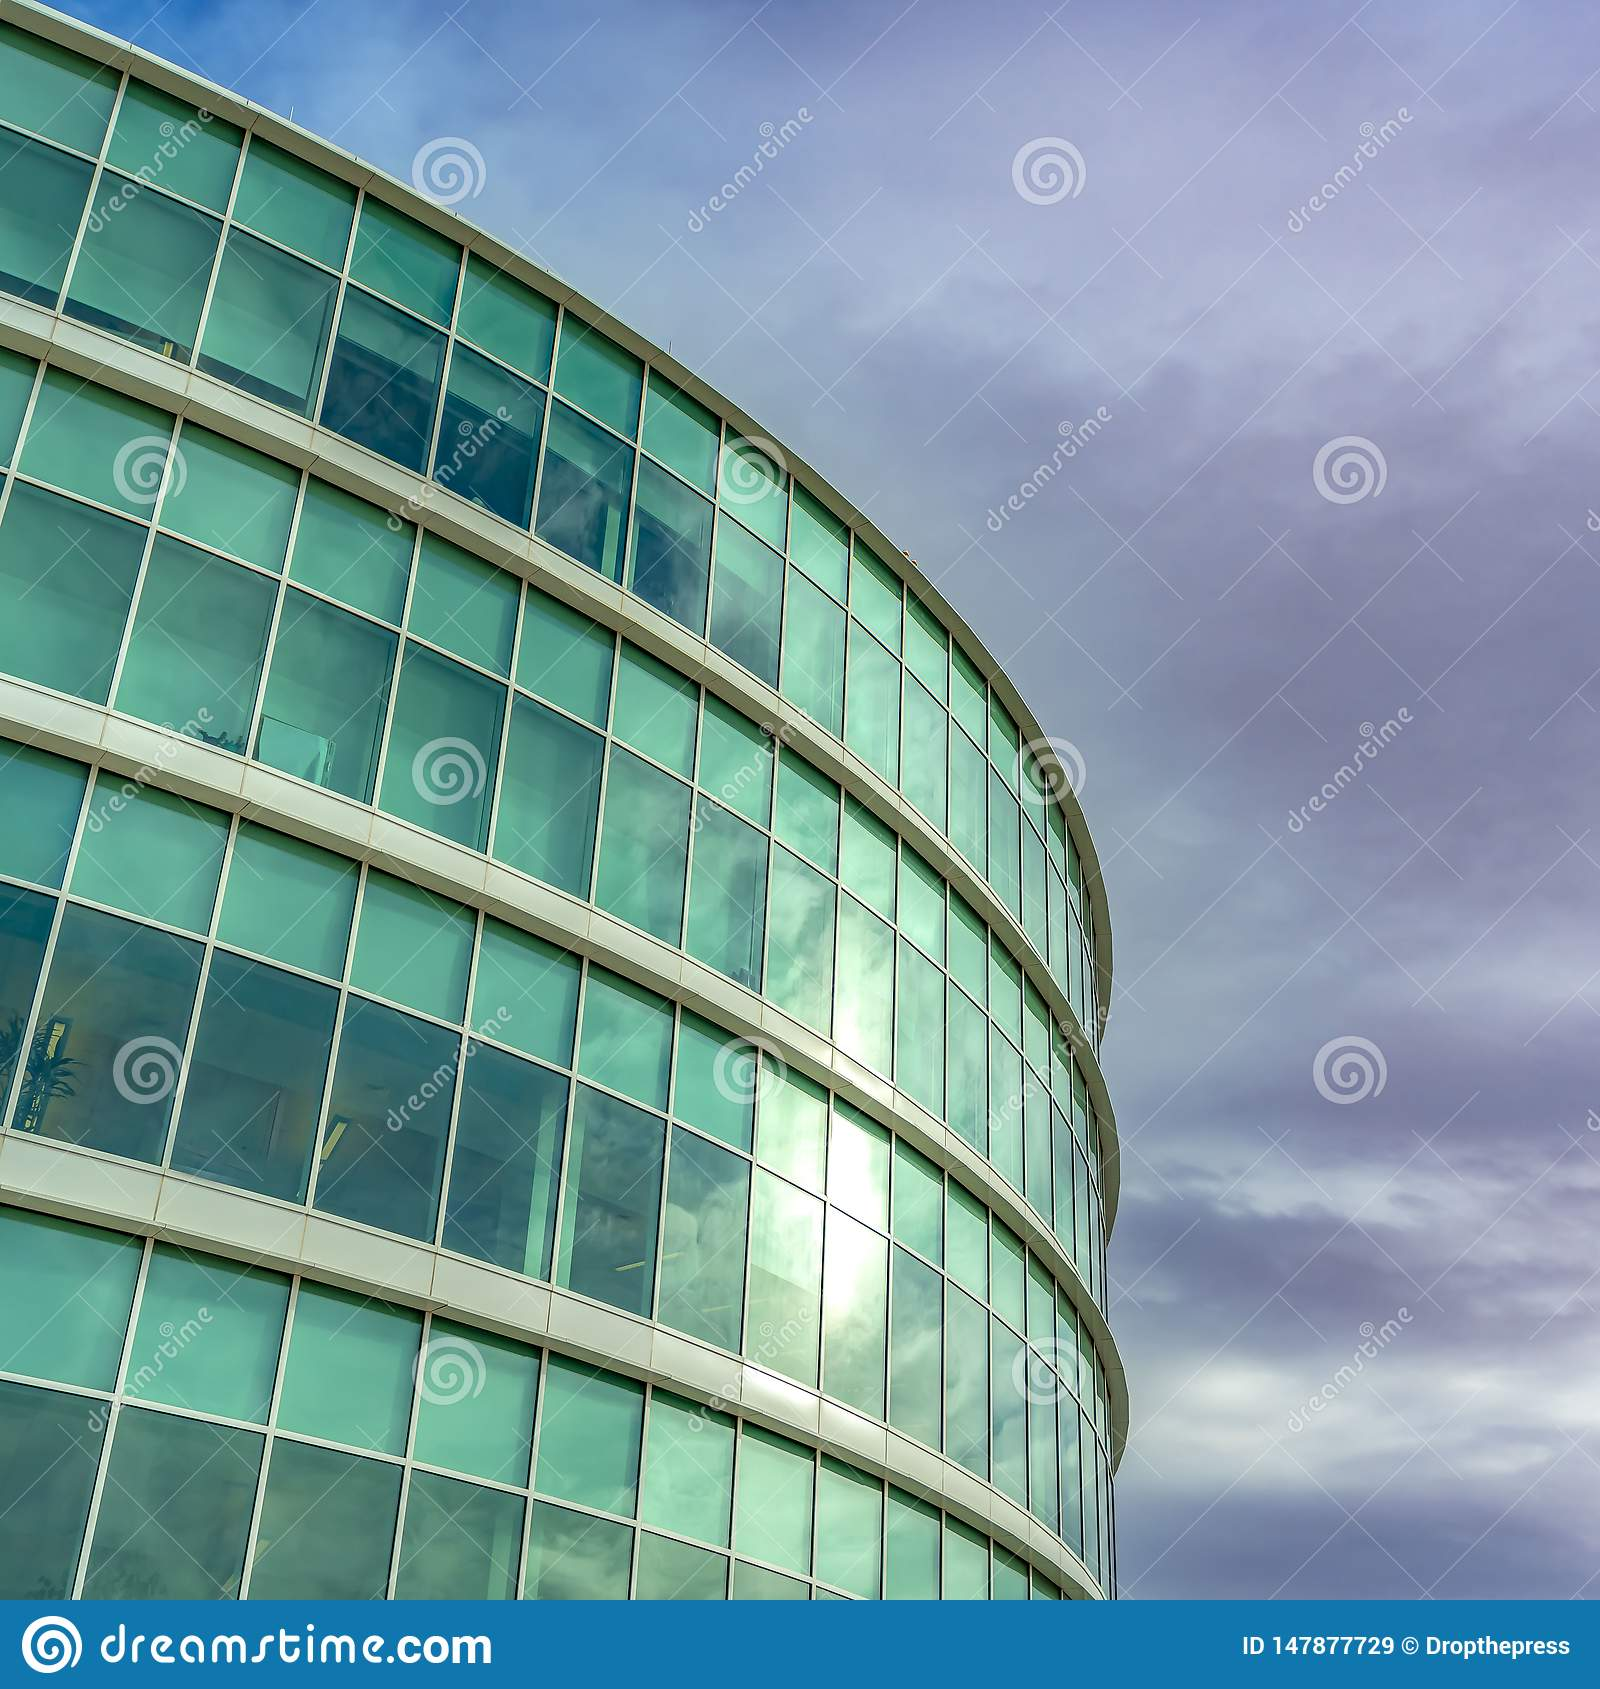 Clear Square Exterior view of a modern office building with reflective glass wall